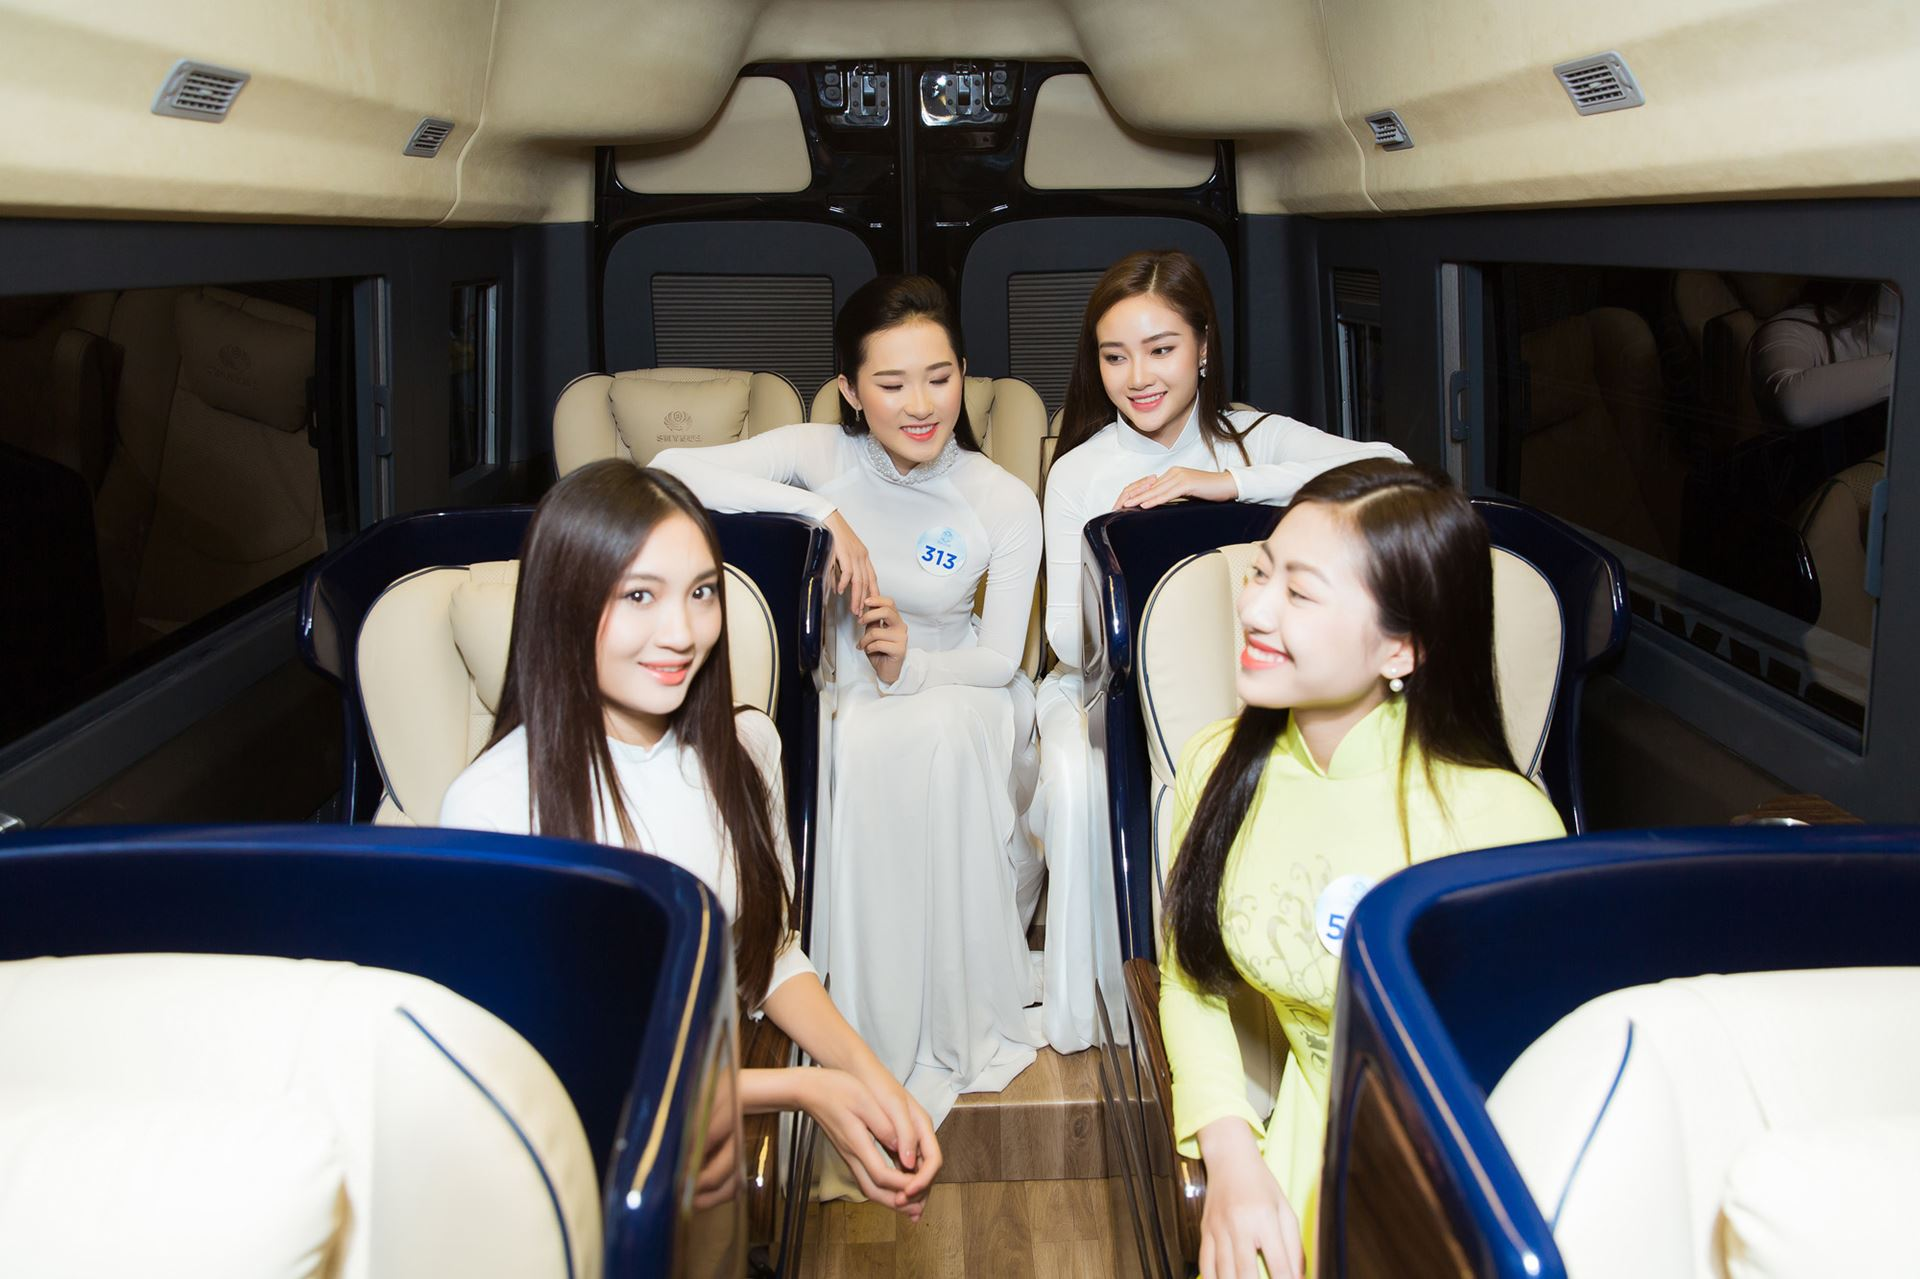 xe limousine Skybus & Miss World Vietnam 2019 - 8